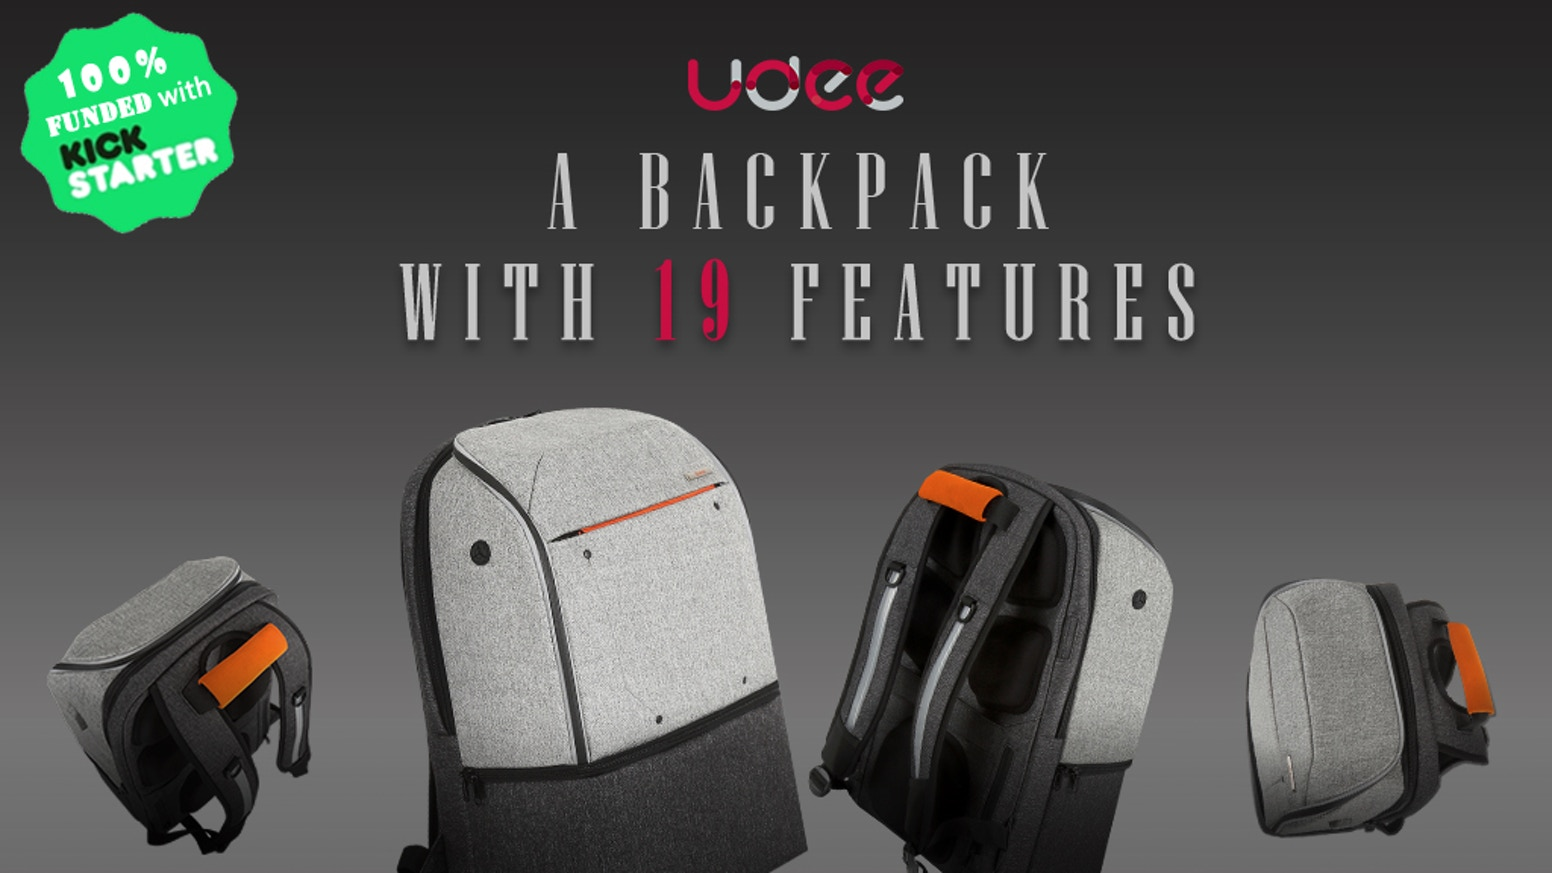 Udee backpack has 19 unique features, making it perfect for everyone from global-trotters, to those just trying to get out of office.